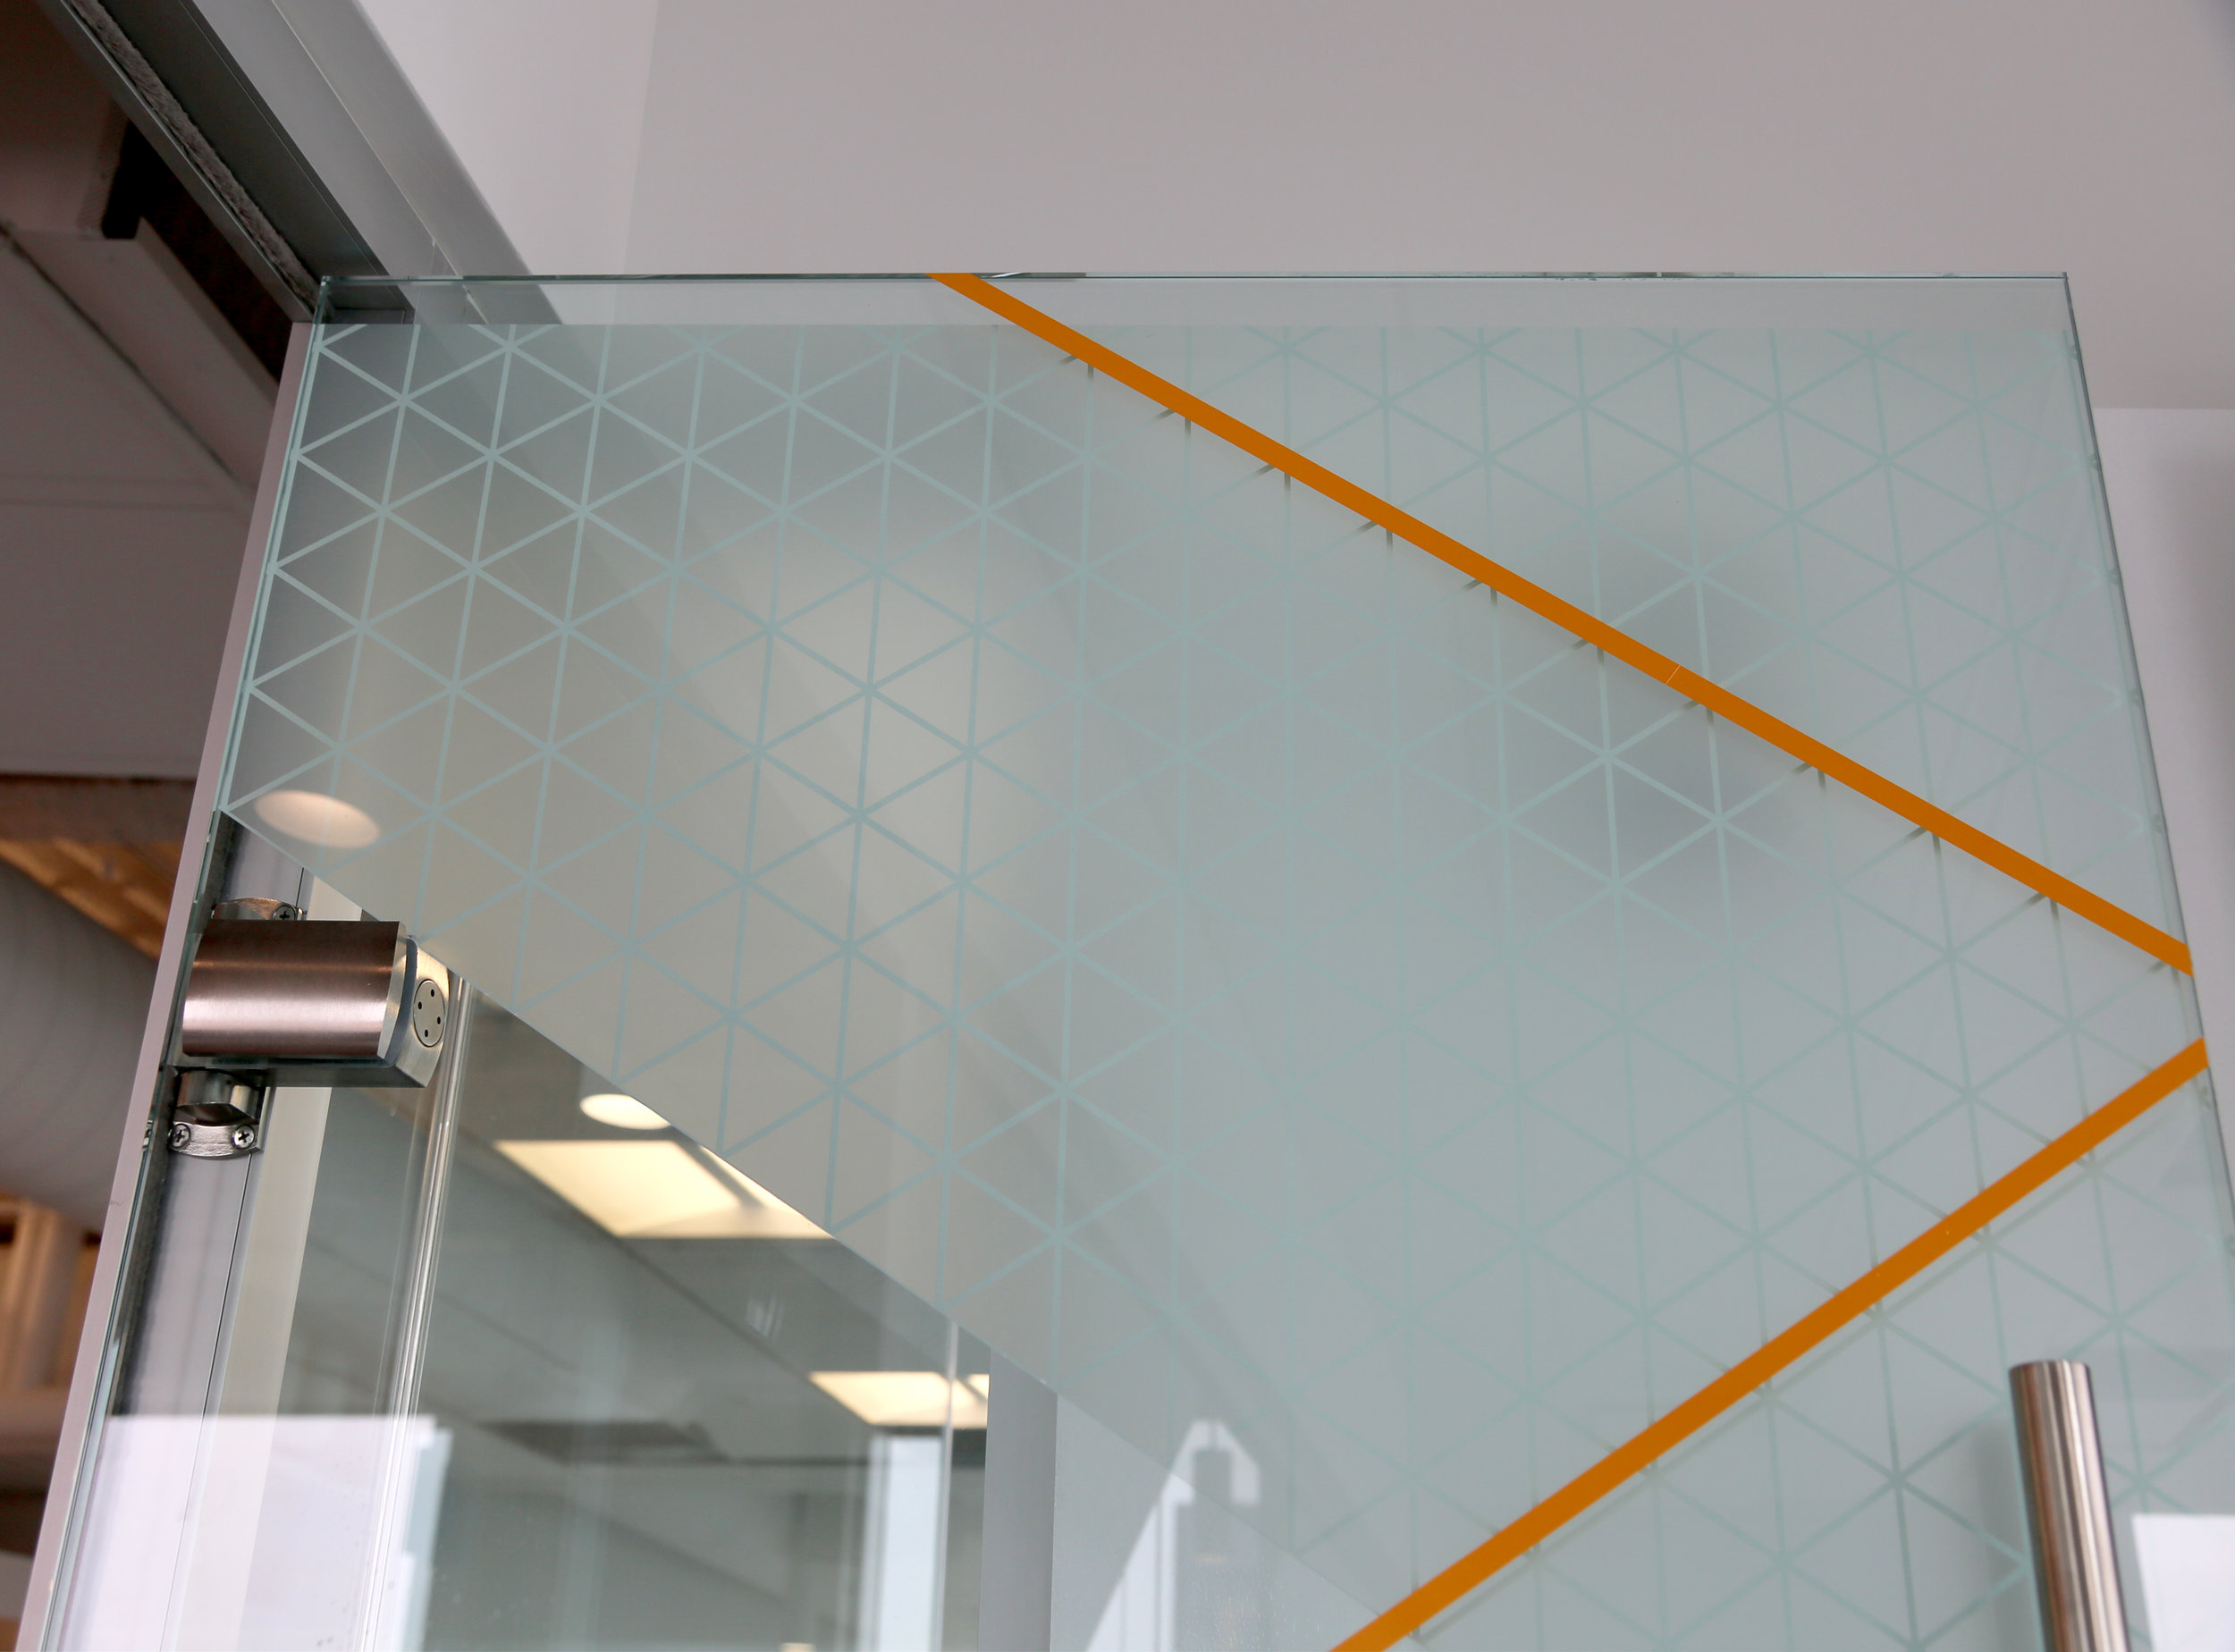 Litespace Frameless Glass Door Detail Hydraulic Glass Hinge - Spaceworks AI.jpg